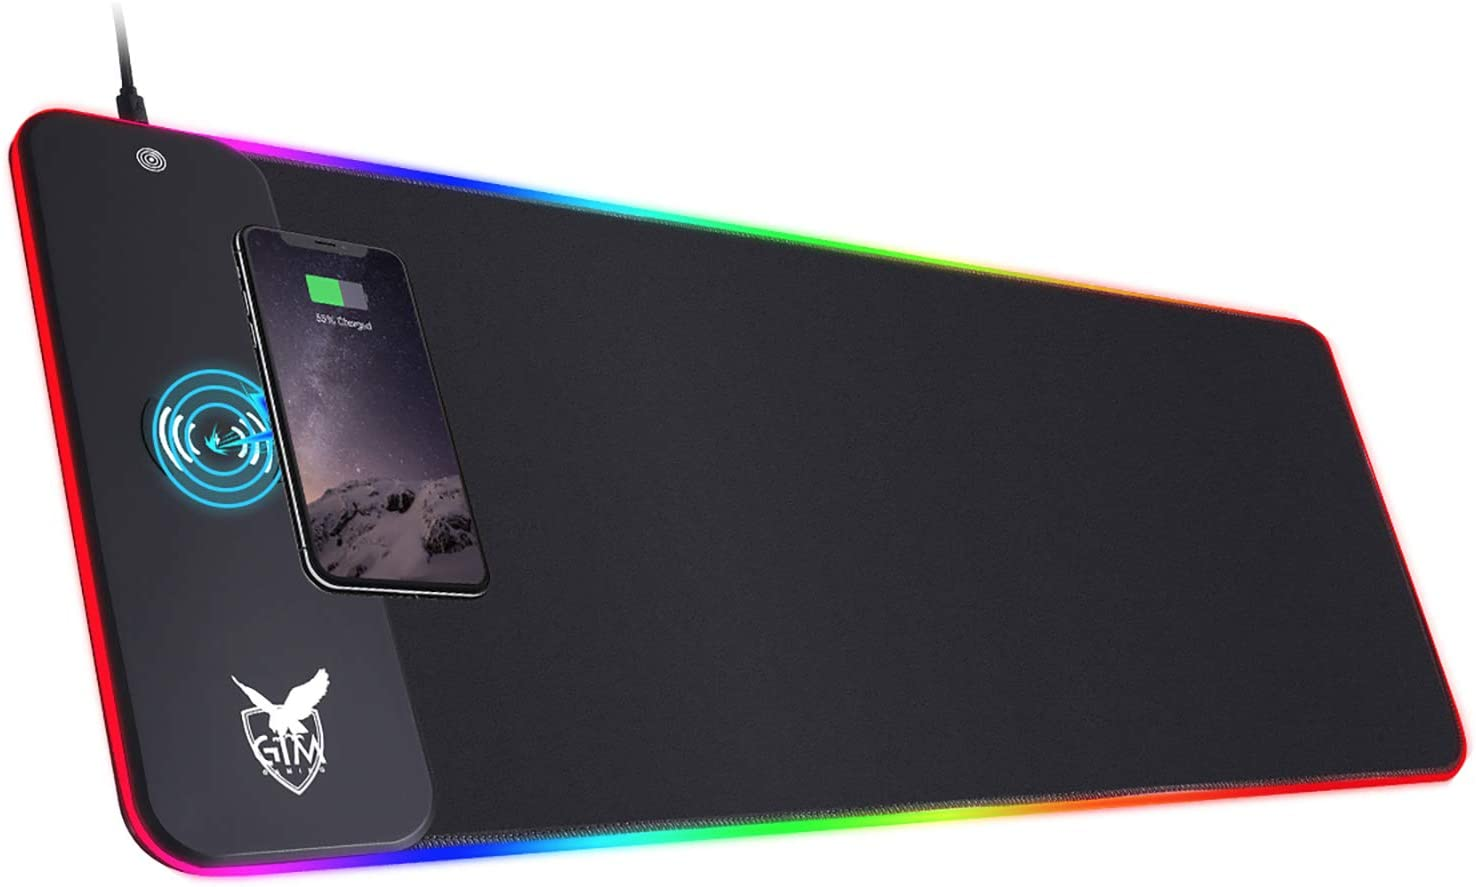 Gim Wireless Charging Mouse Pad